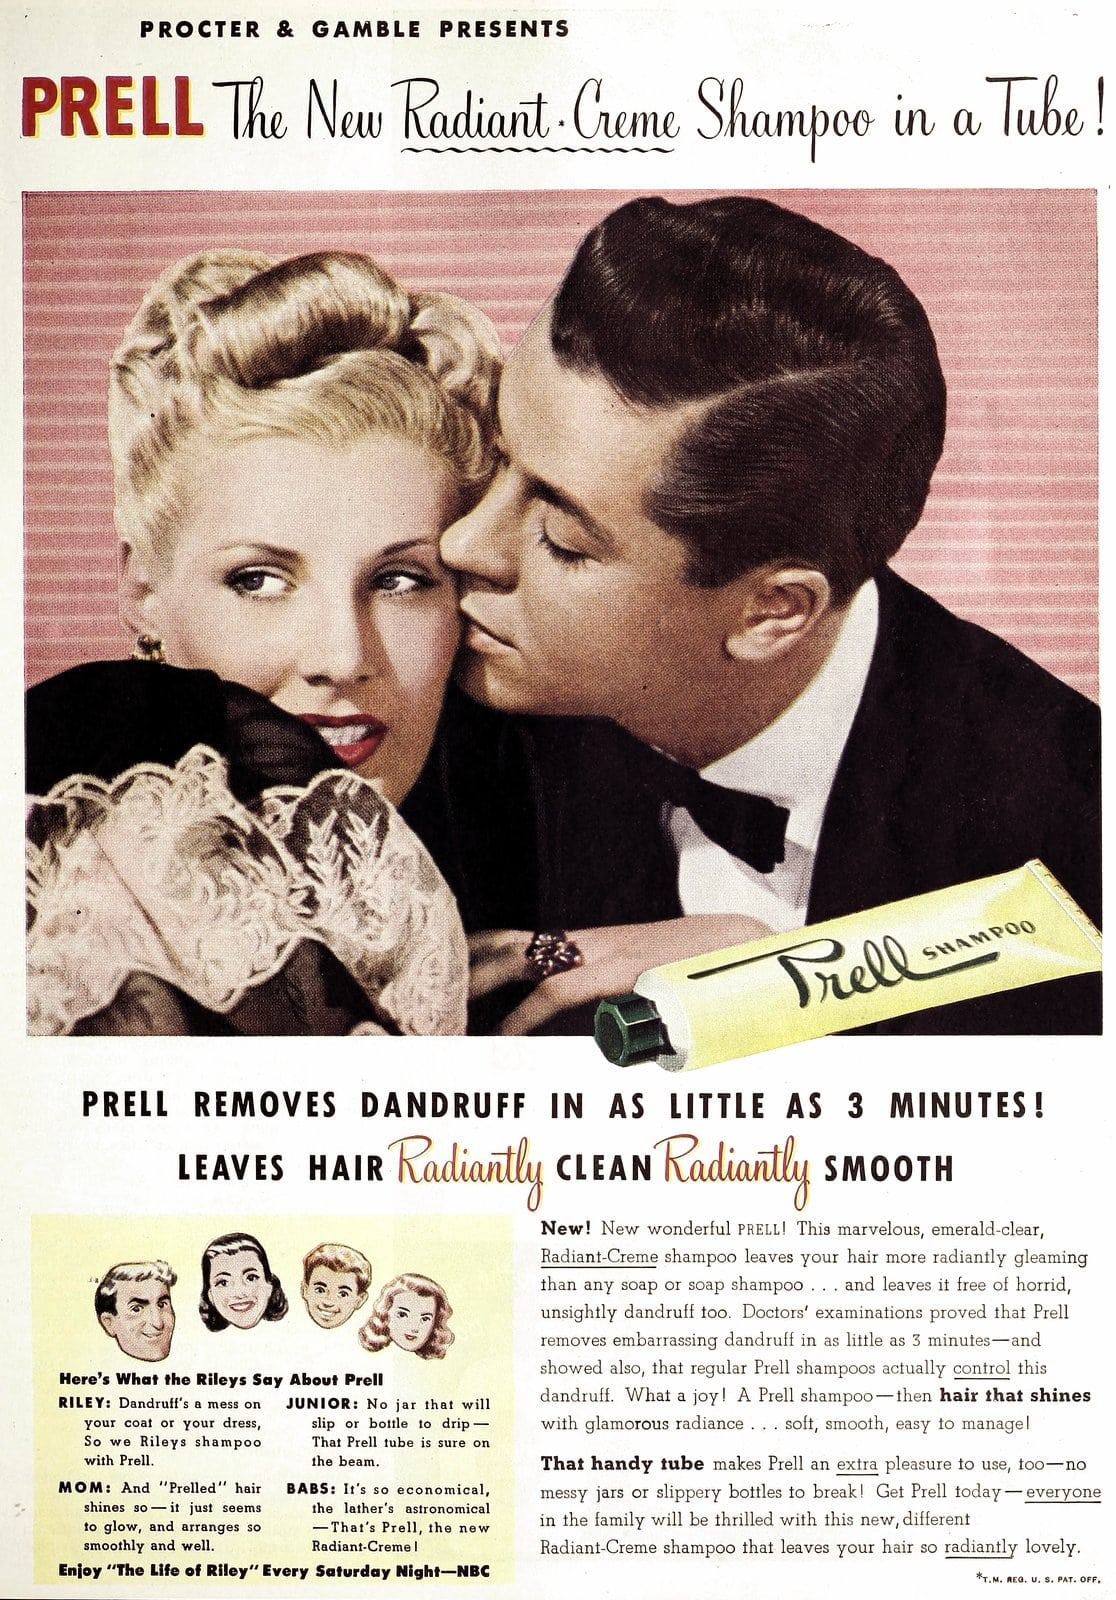 New Prell shampoo from Proctor and Gamble (1947)